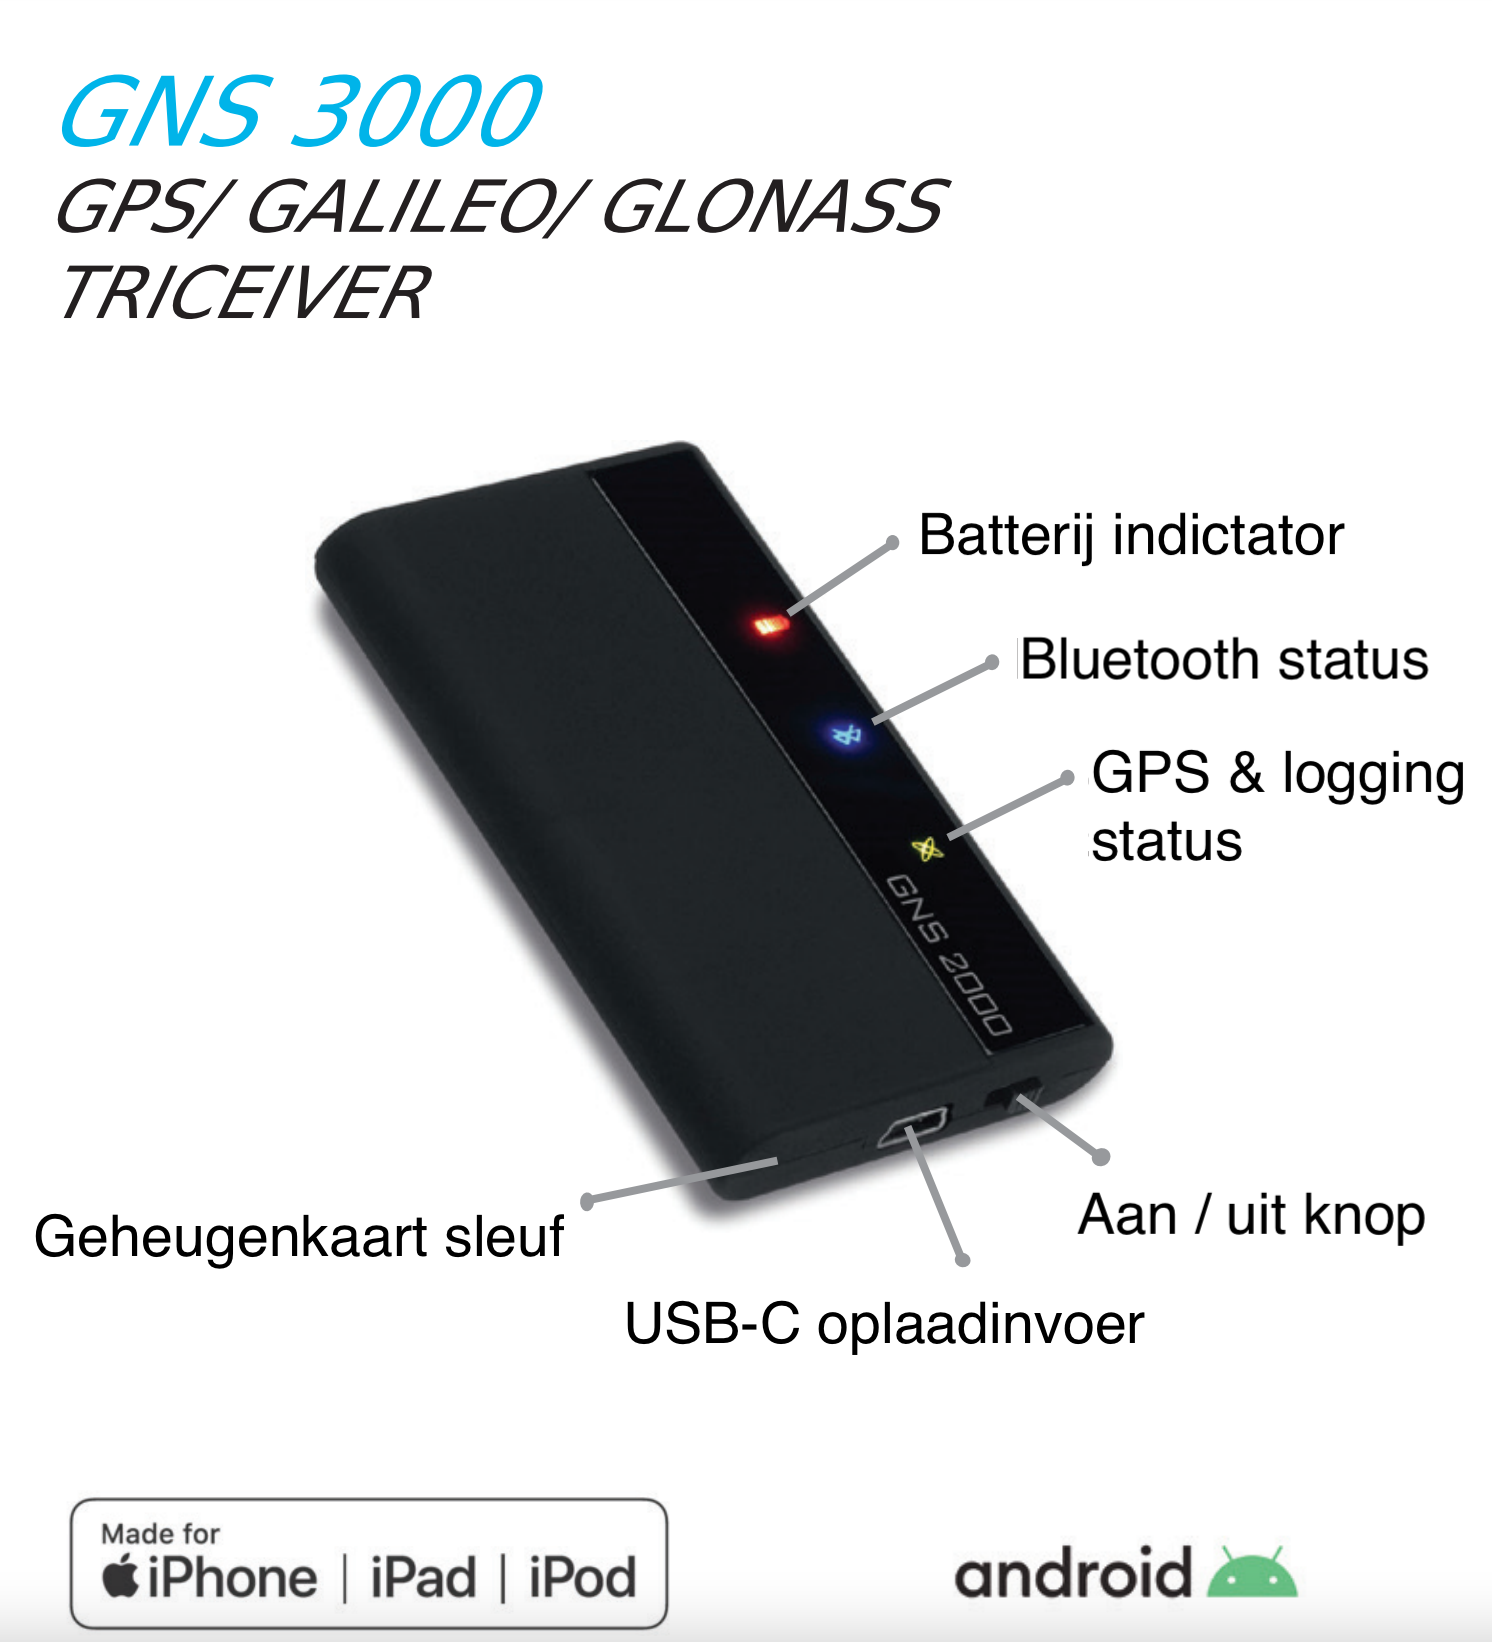 GNS-3000 Layout